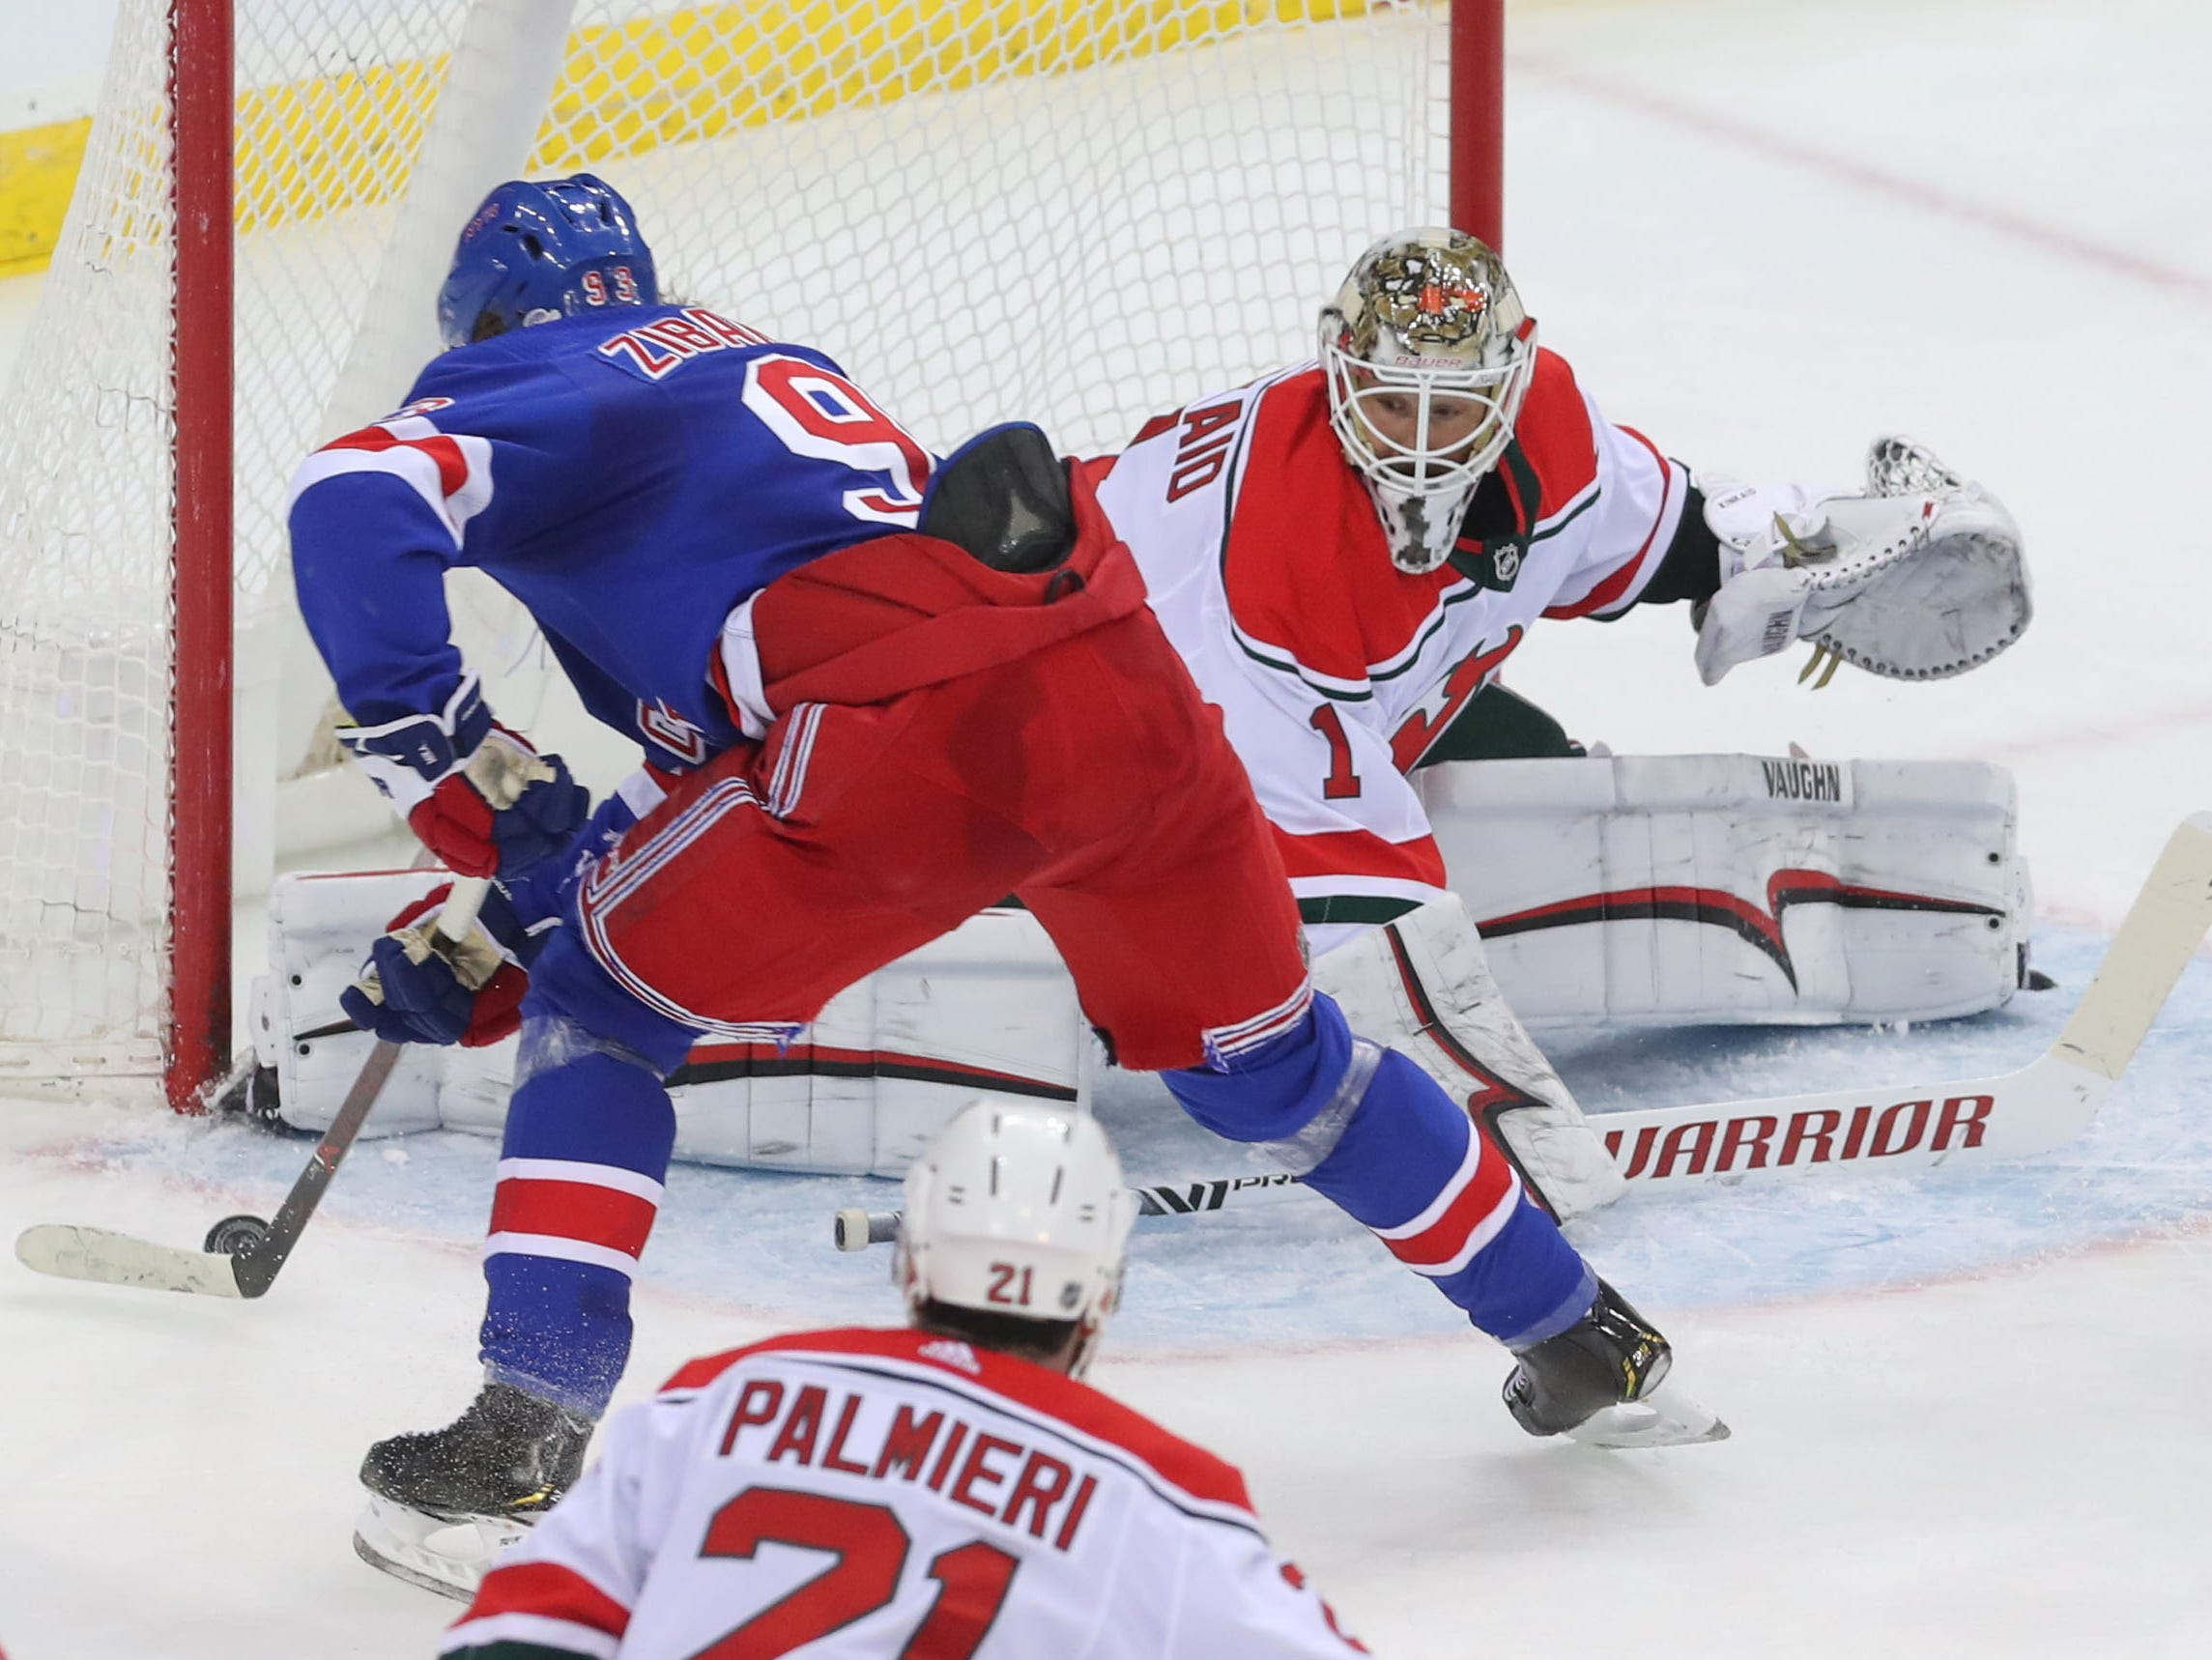 Jan. 31: New York Rangers center Mika Zibanejad scores against New Jersey Devils goaltender Keith Kinkaid. He had  a hat trick in the 4-3 victory.